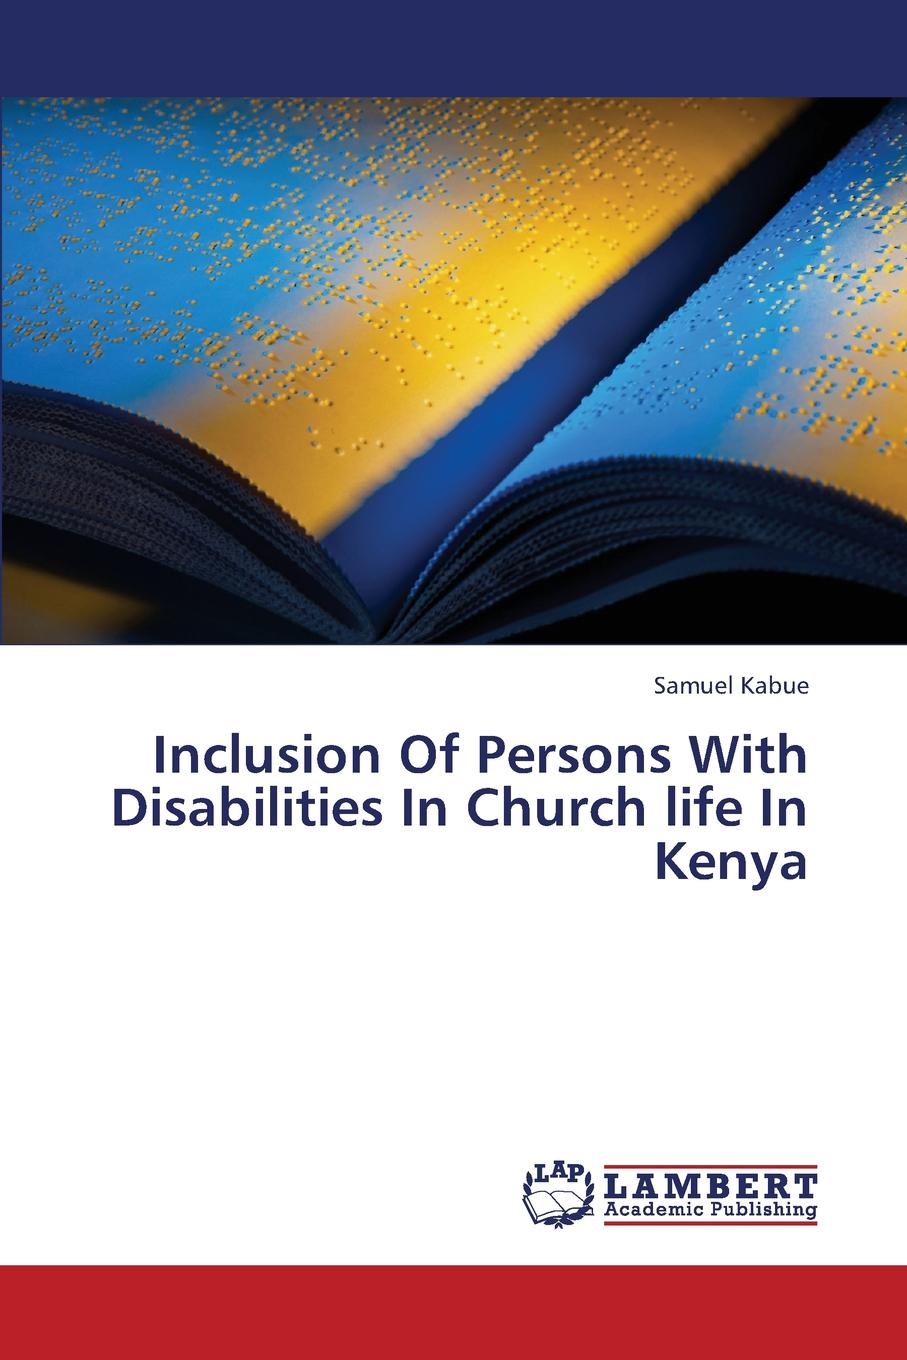 Kabue Samuel Inclusion of Persons with Disabilities in Church Life in Kenya dave browning hybrid church the fusion of intimacy and impact